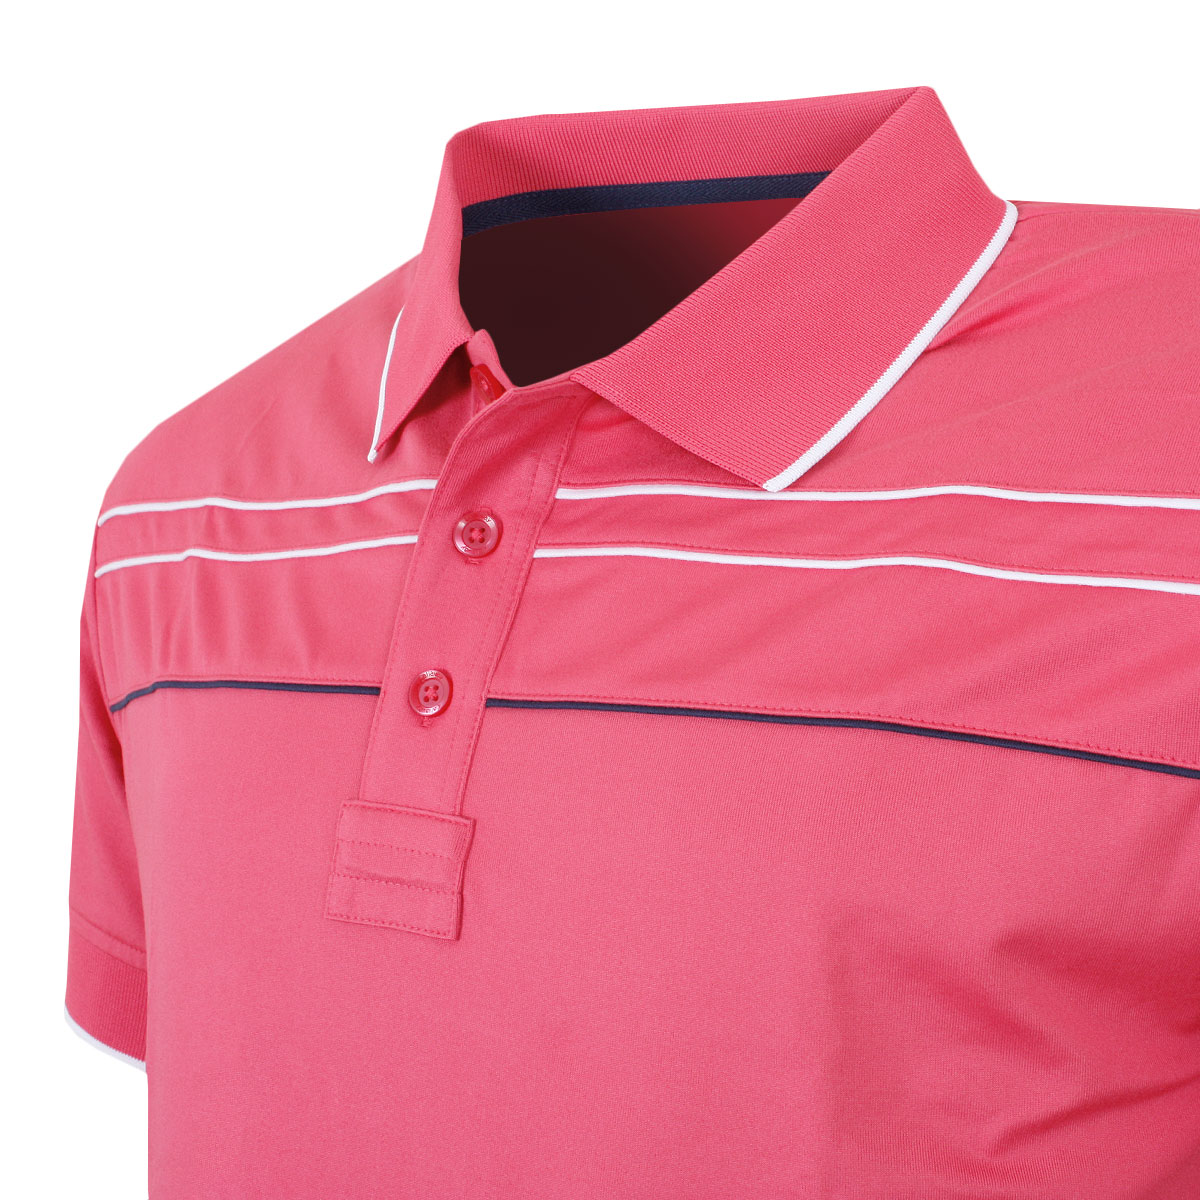 Callaway-Golf-Mens-X-Range-Stretch-Chest-Piped-Polo-Shirt-60-OFF-RRP thumbnail 7